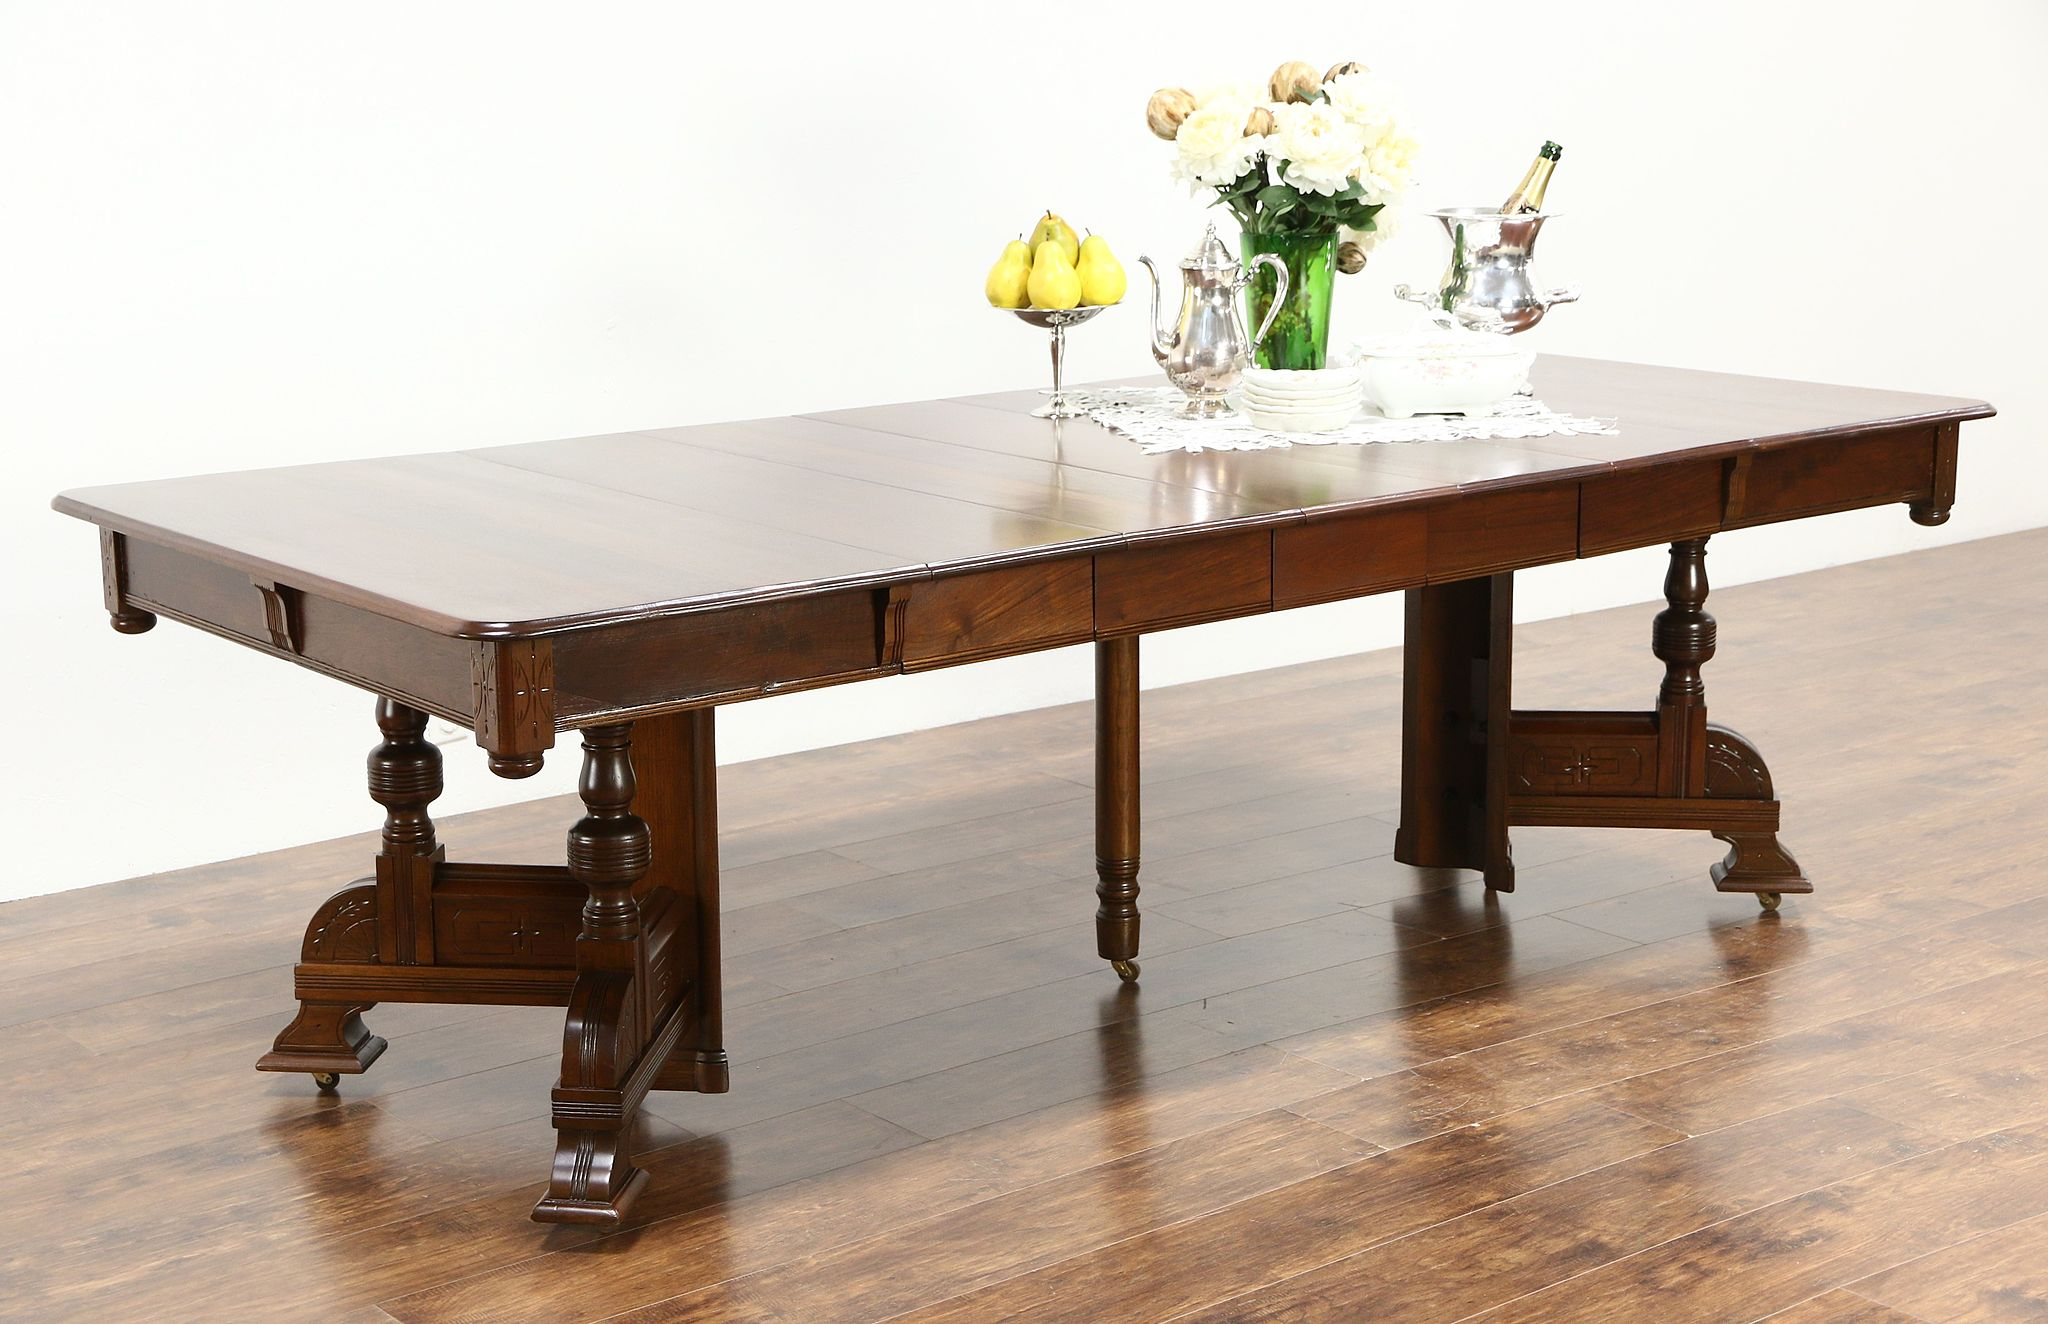 Victorian Eastlake 1890 Antique Walnut Dining Table 5 Leaves Extends 98